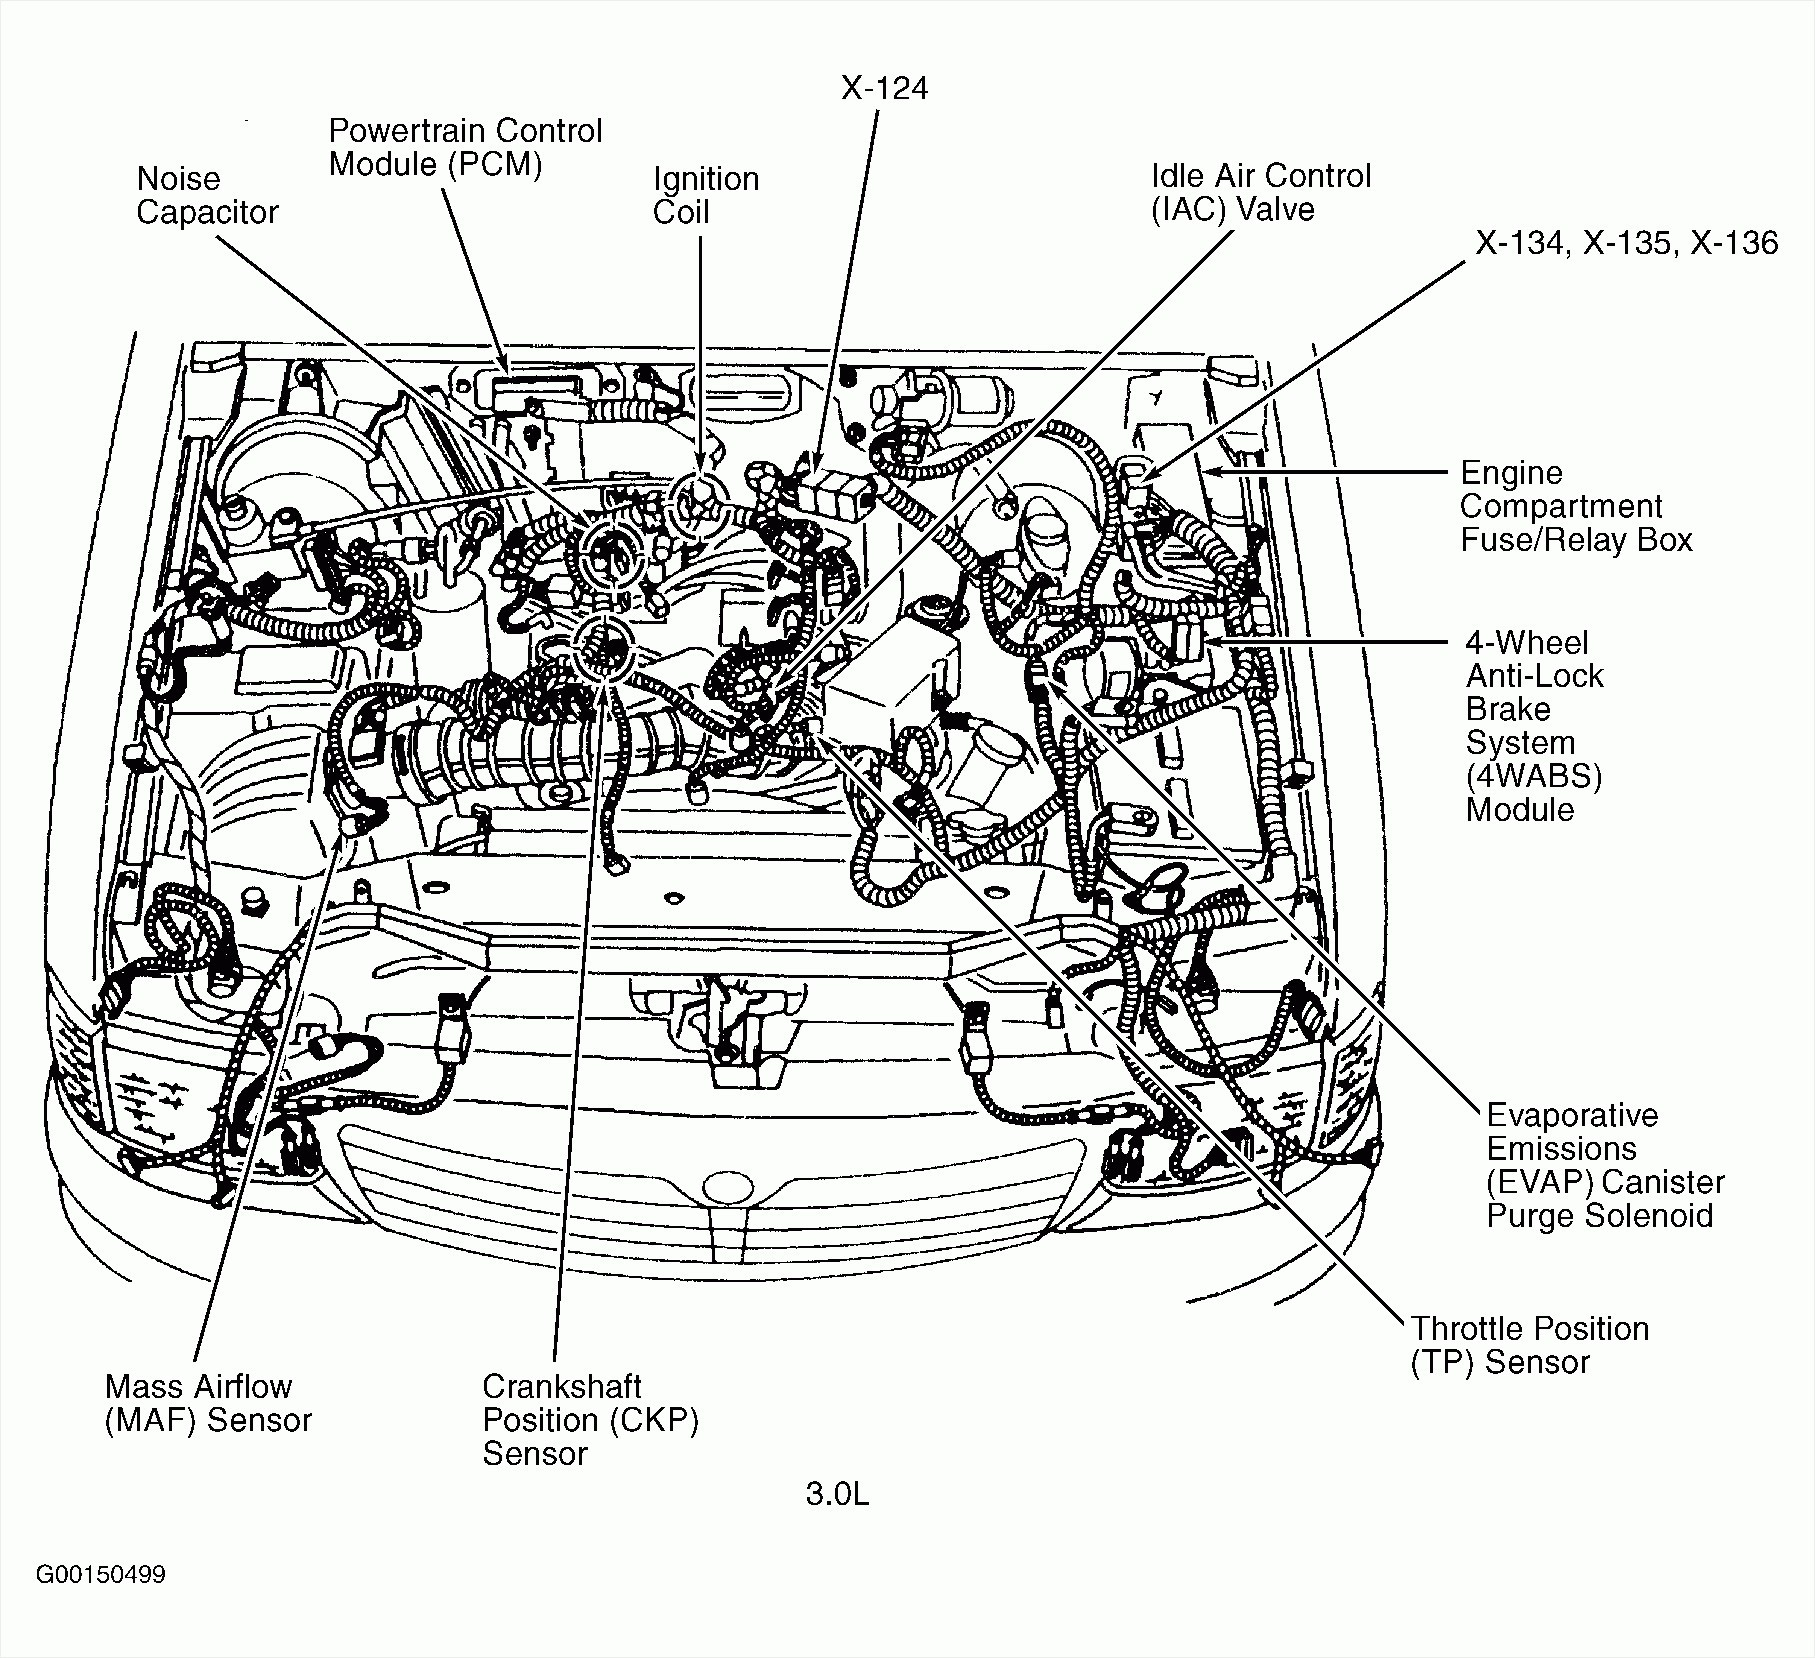 hight resolution of 2003mazdaprotegeenginediagram 2003 mazda protege engine diagram 2003 mazda protege engine diagram wiring diagram library 2003mazdaprotegeenginediagram 2003